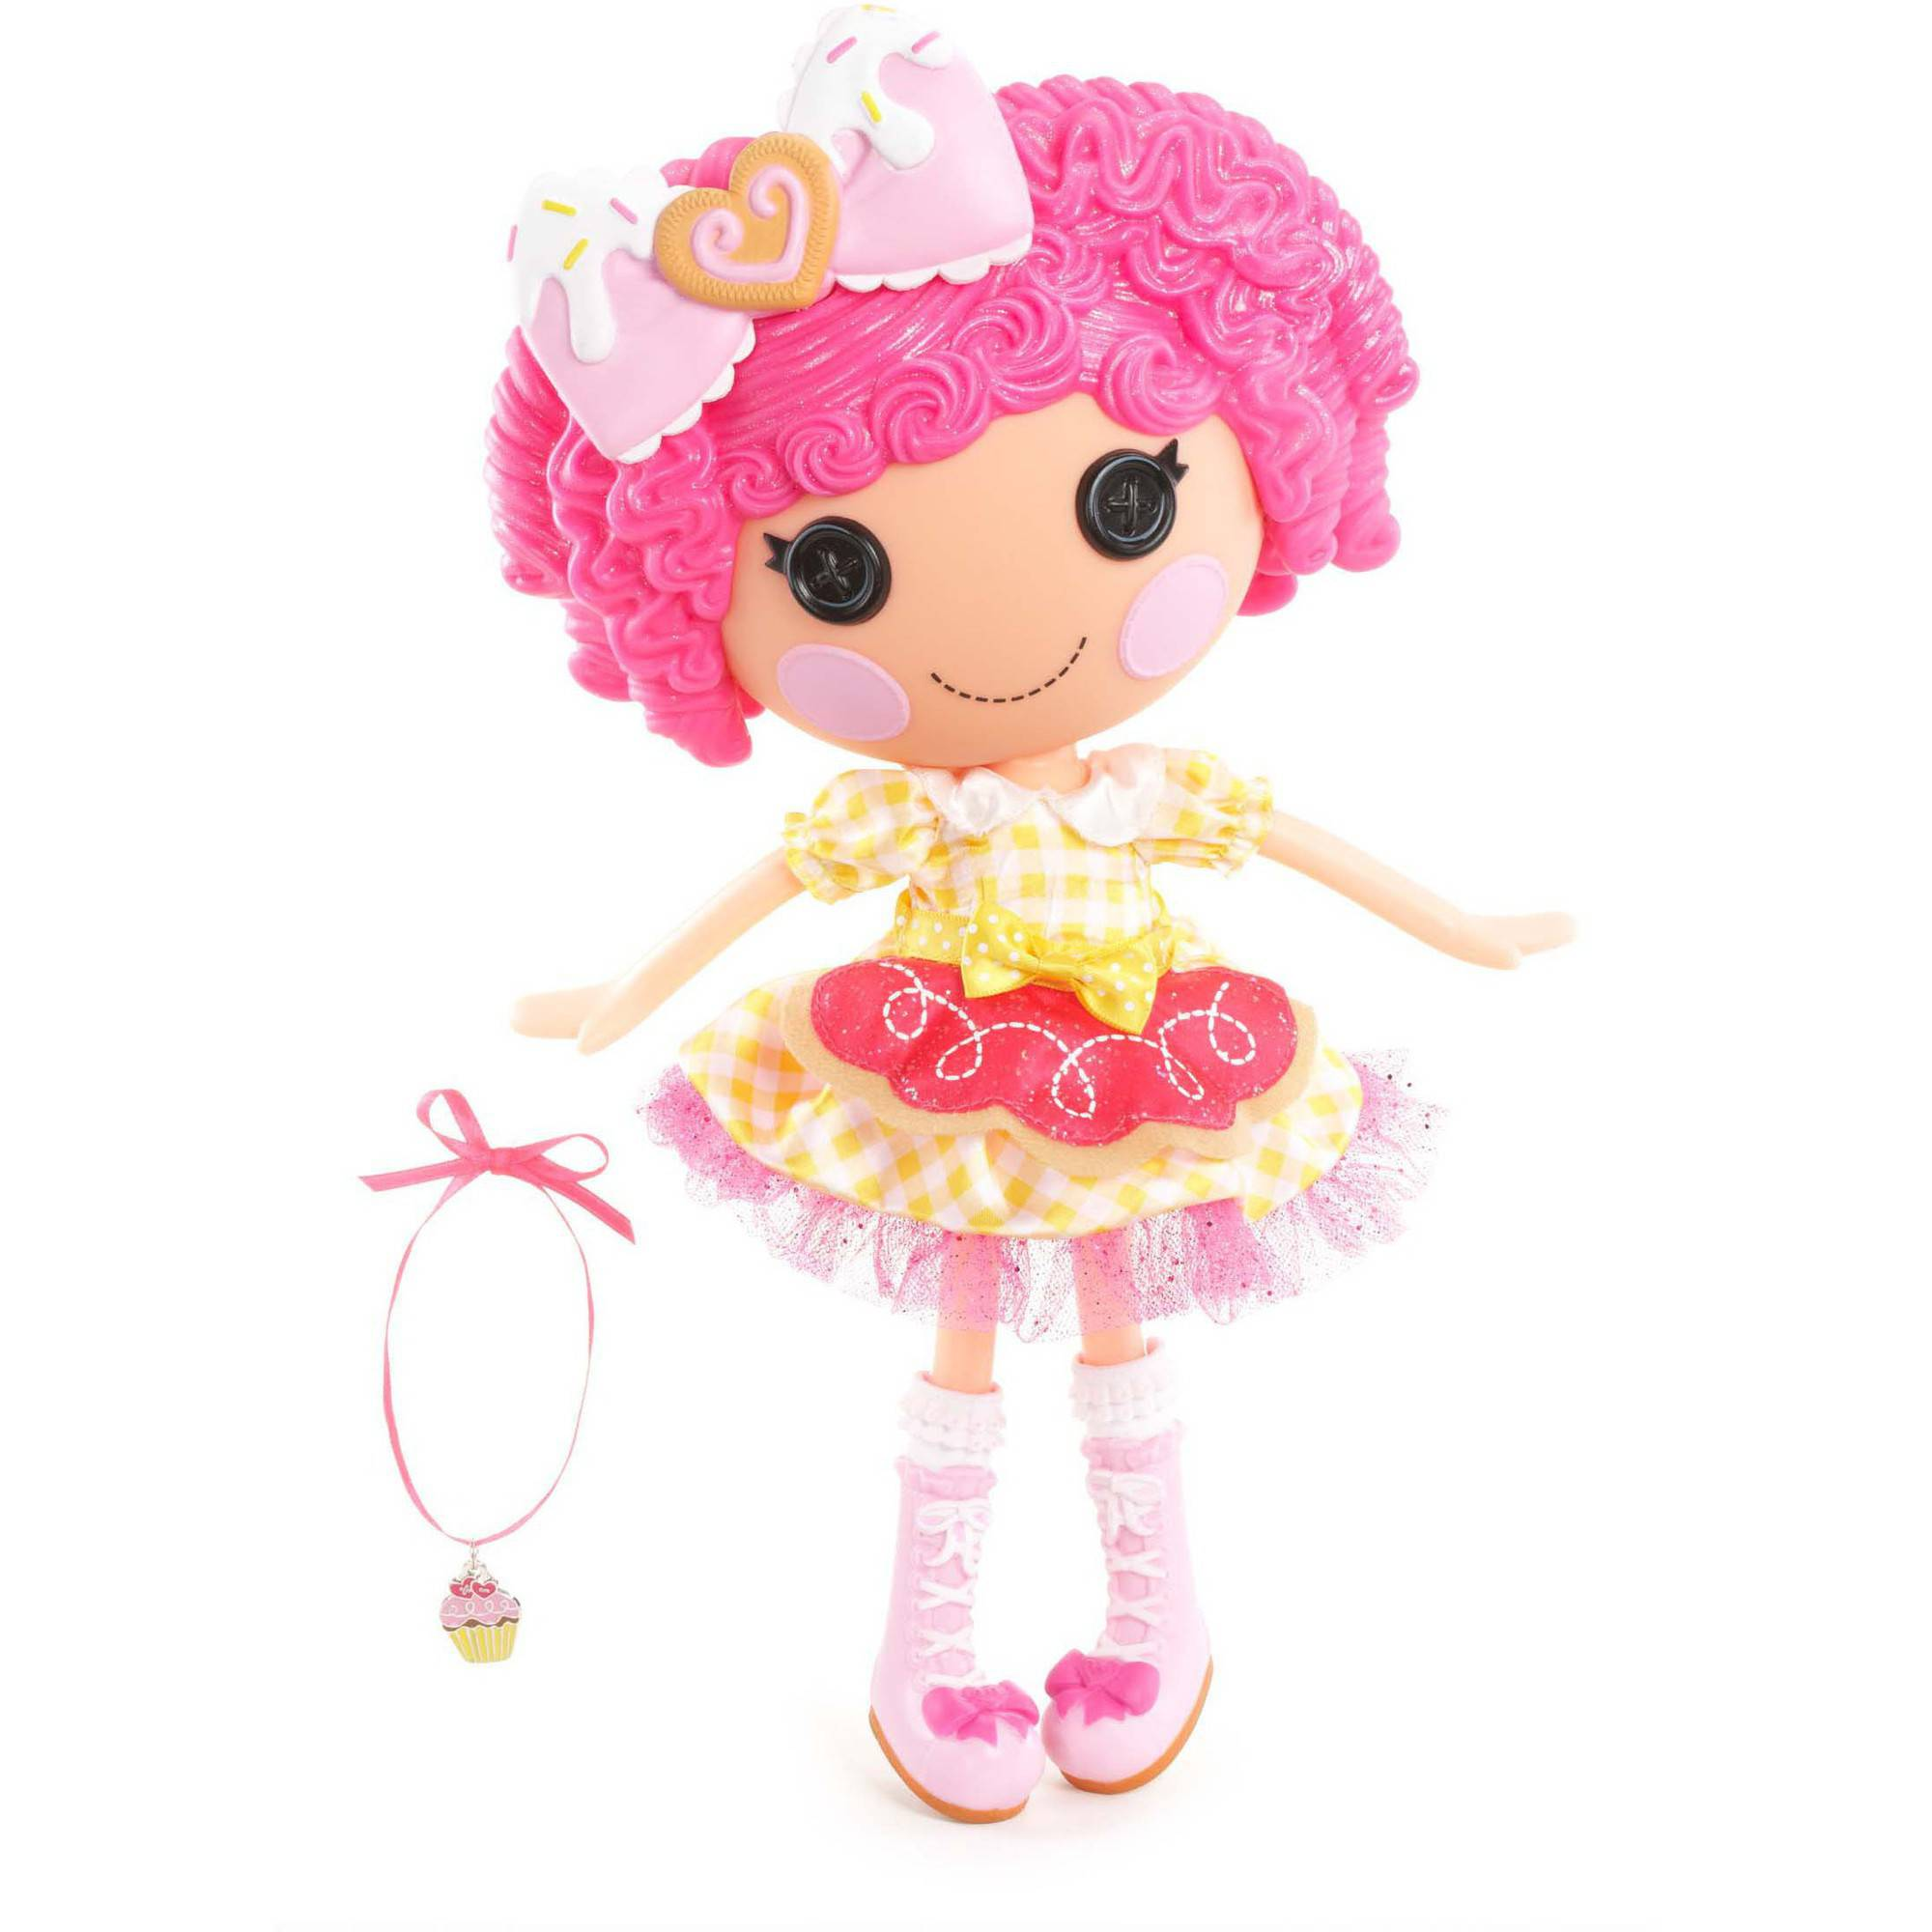 Lalaloopsy Super Silly Party Doll, Crumbs Sugar Cookie